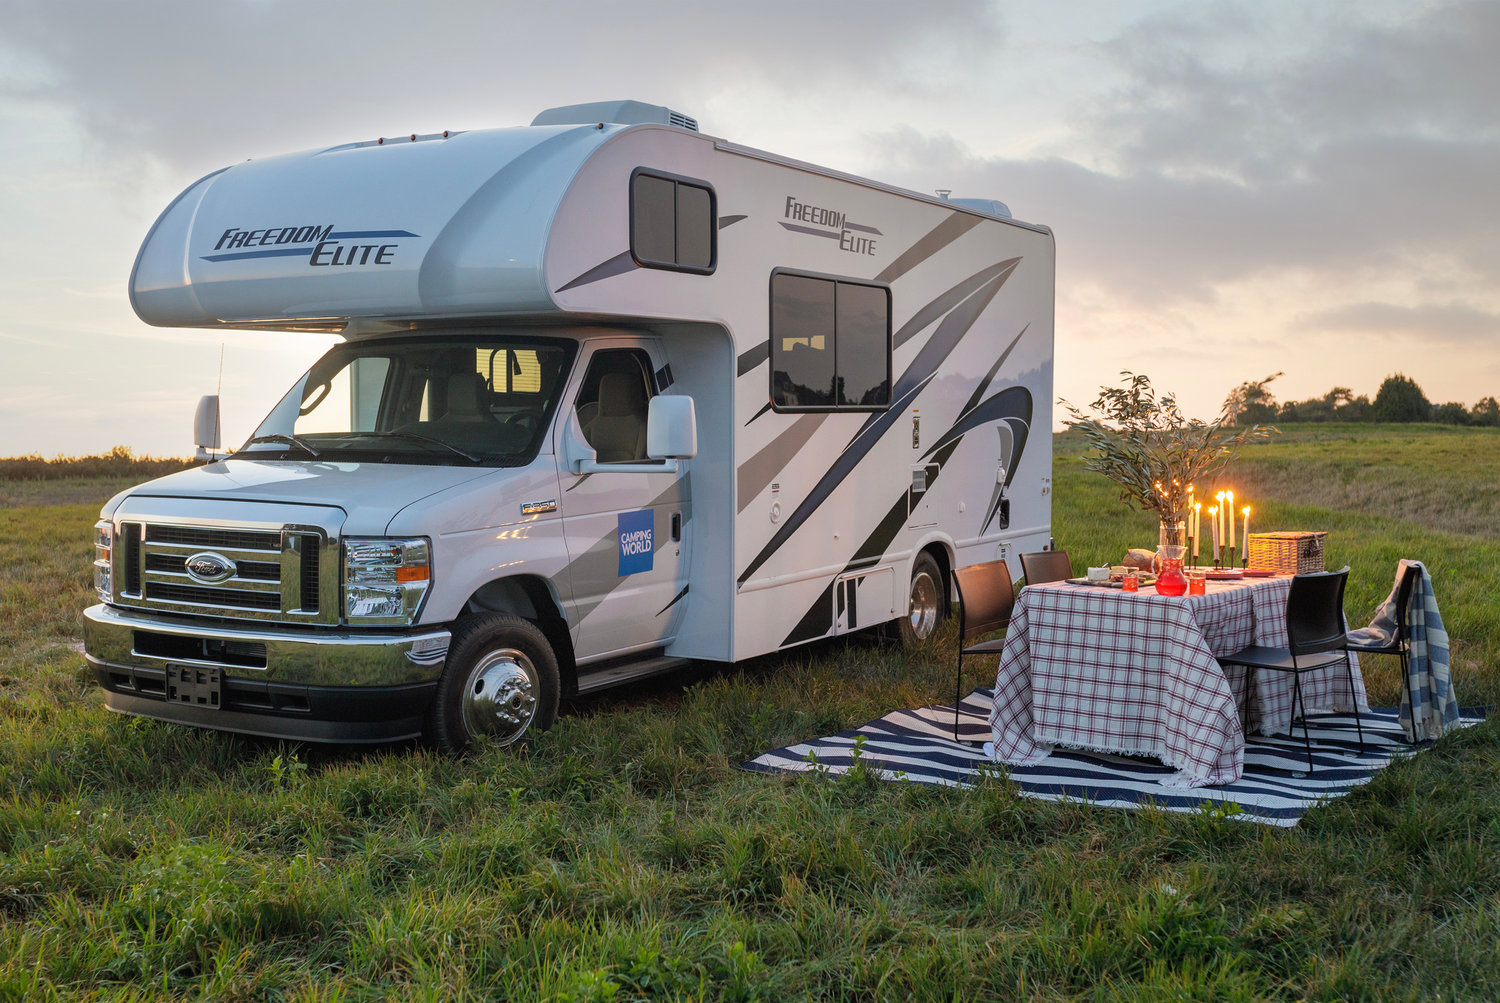 The 24-foot motorhome is a Dream Home first and includes sleeping space for five, a high-end kitchen, and outdoor lounge set